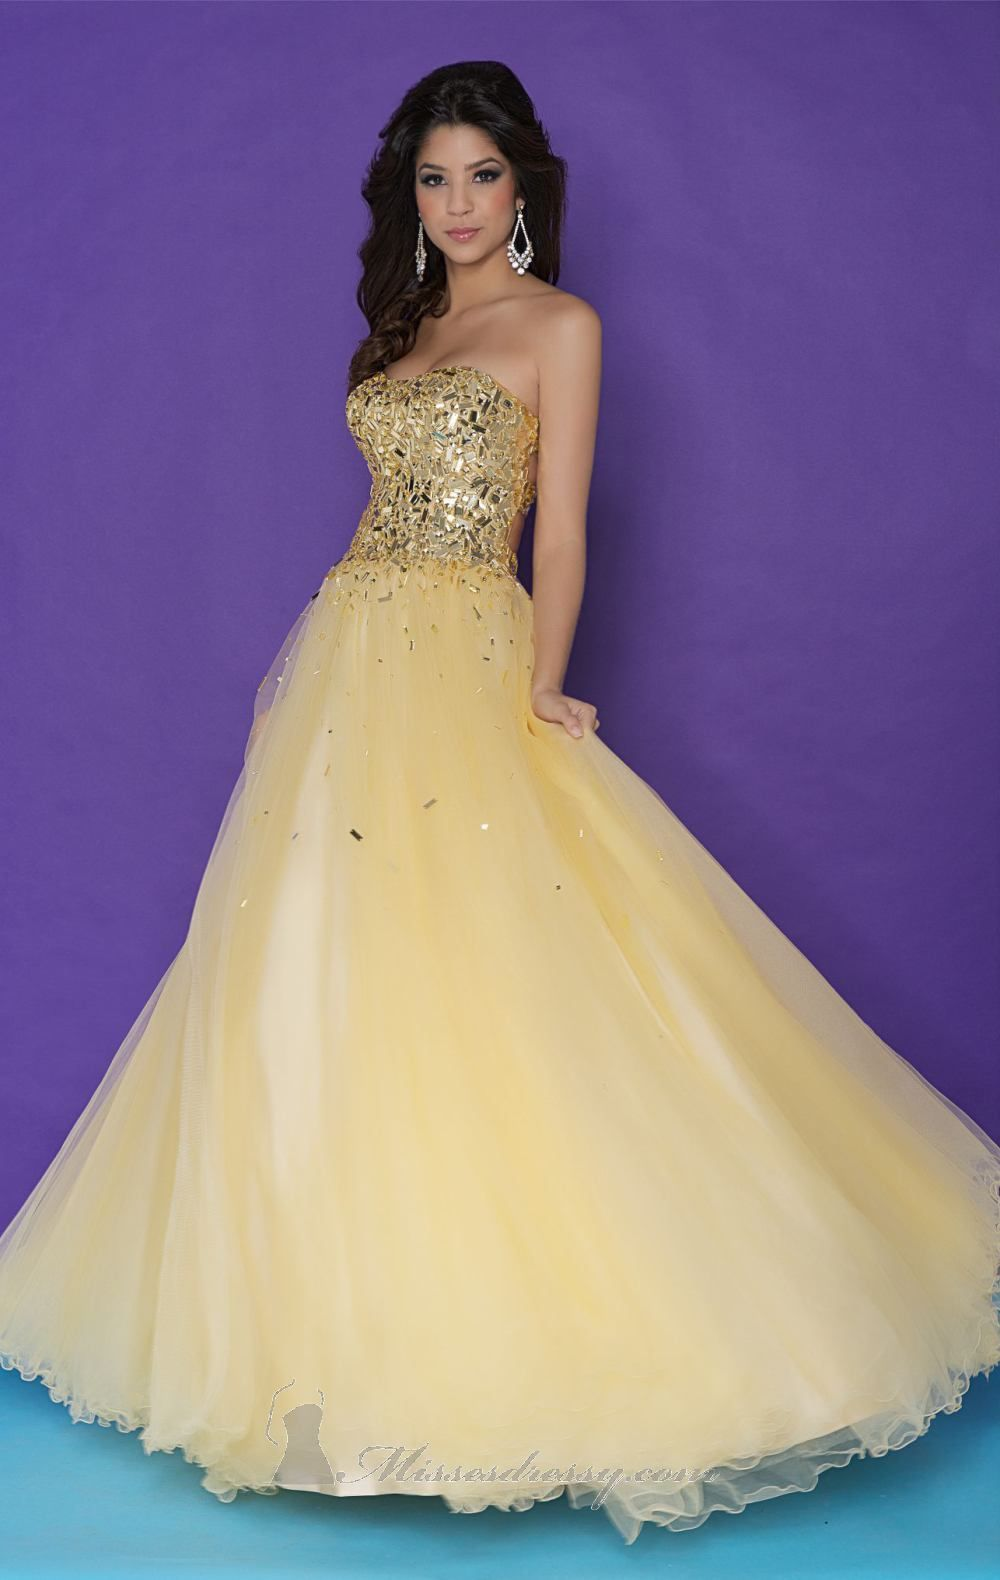 Alexia dress missesdressy goldenyelloworange dresses